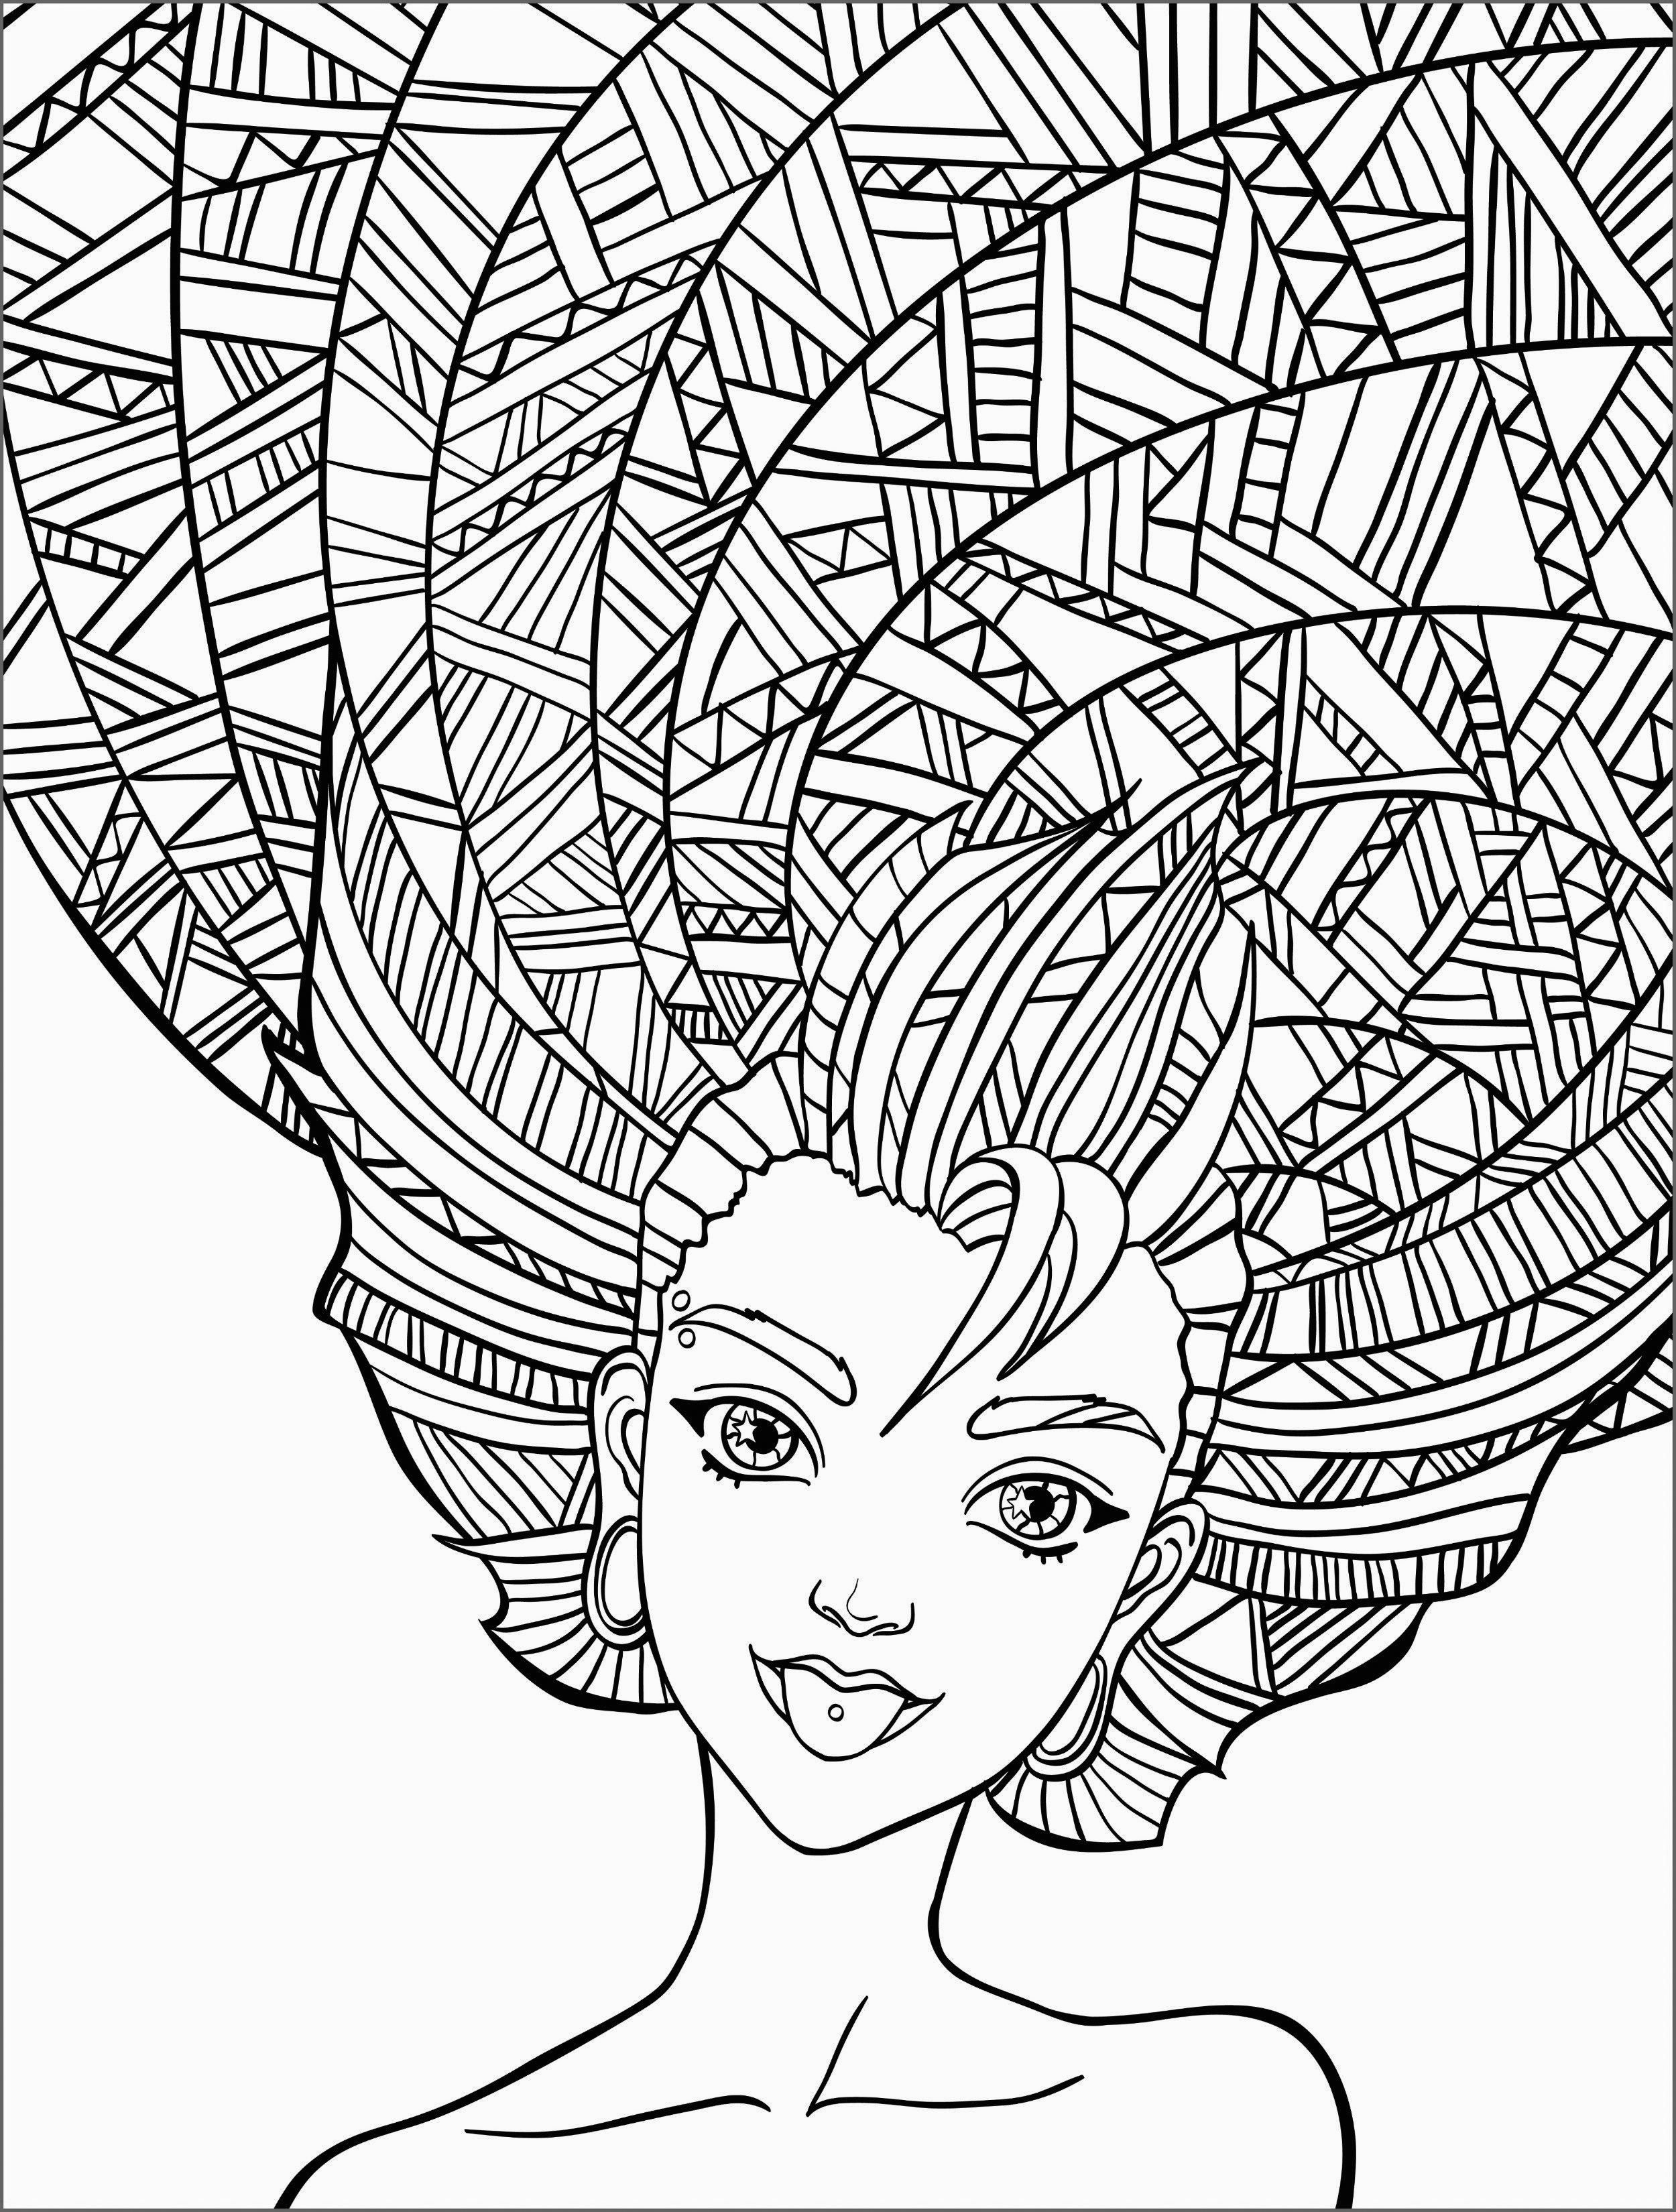 adult coloring pages online coloring pages for adults best coloring pages for kids pages adult online coloring